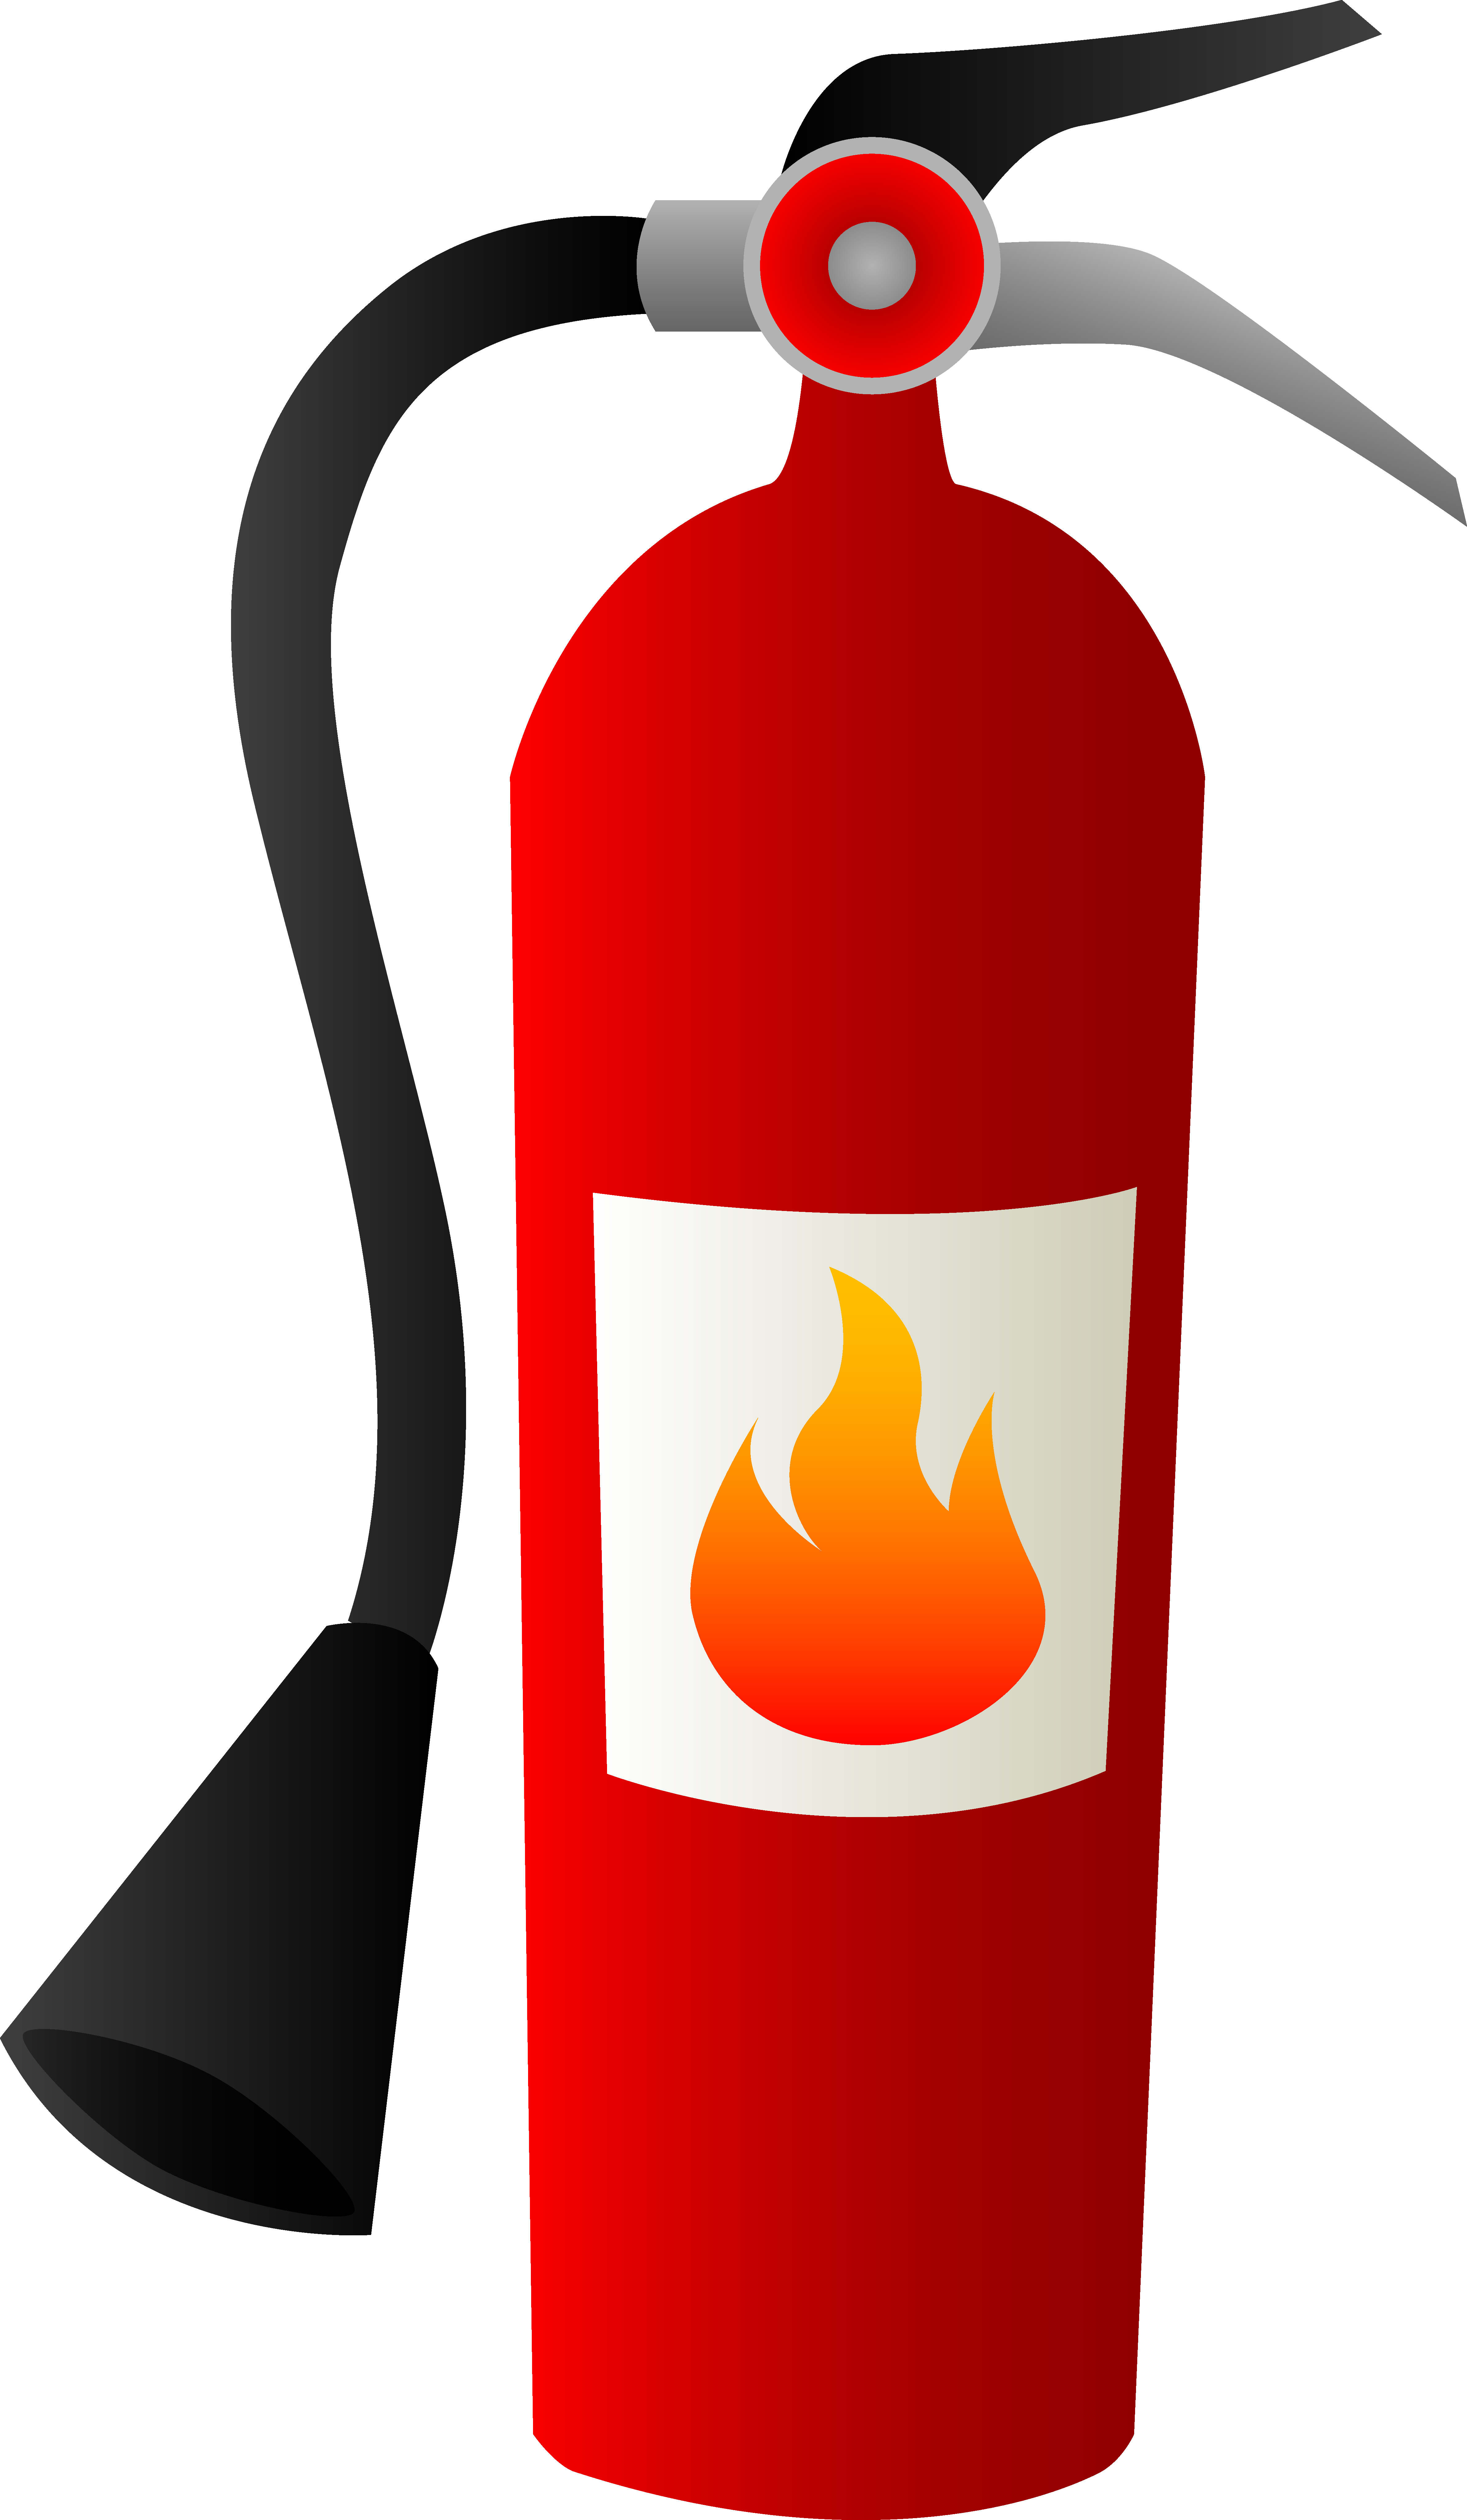 banner freeuse stock Clipart kitchen. Fire extinguisher drawing at